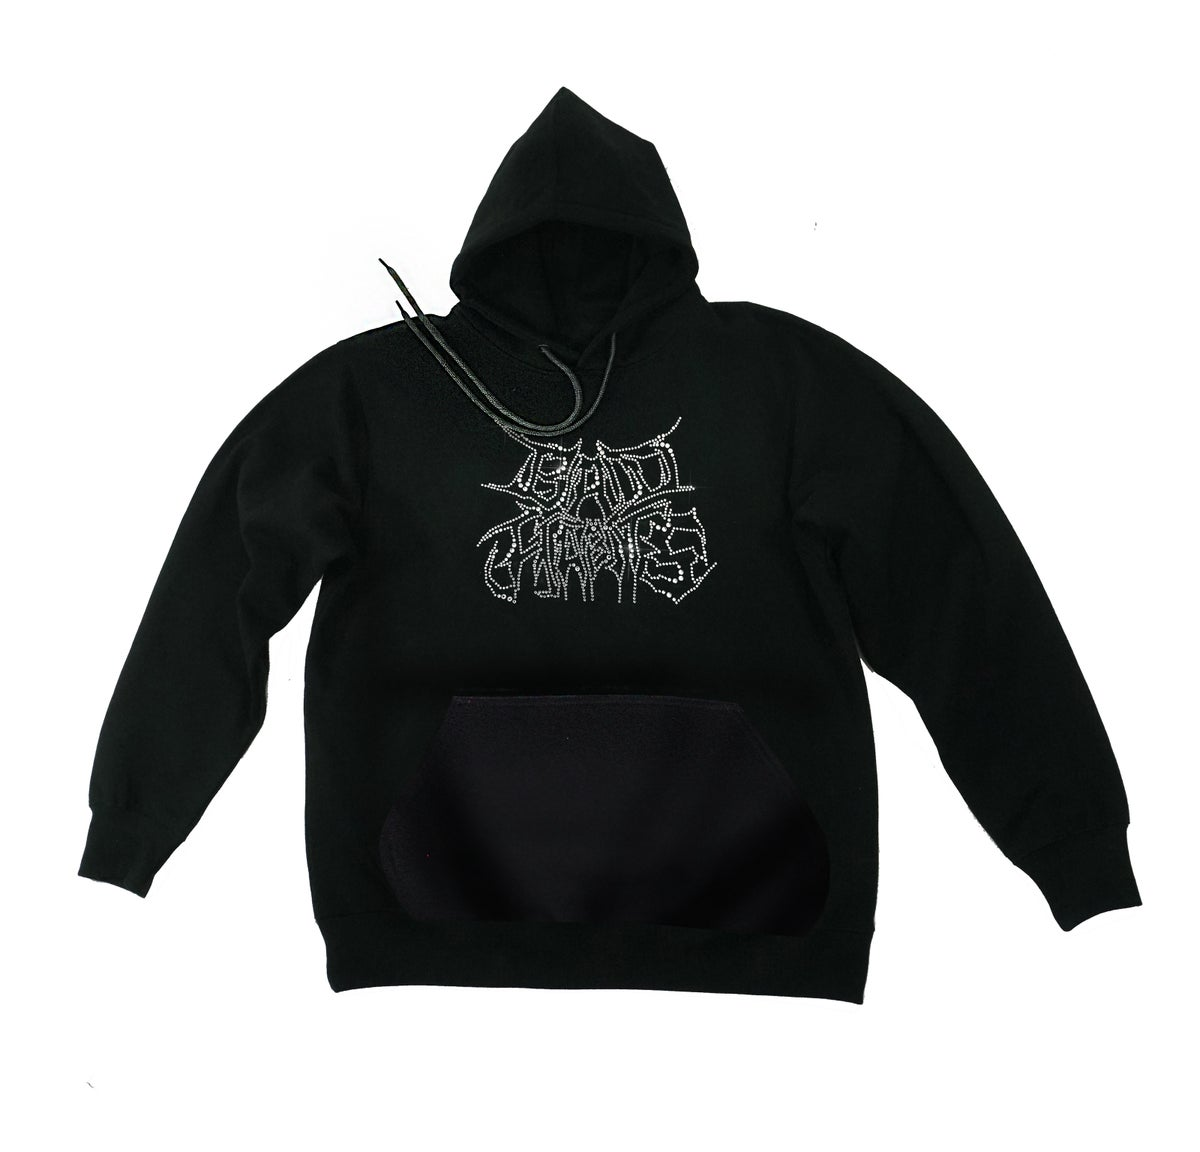 Image of Bad Habits - strass hoodie